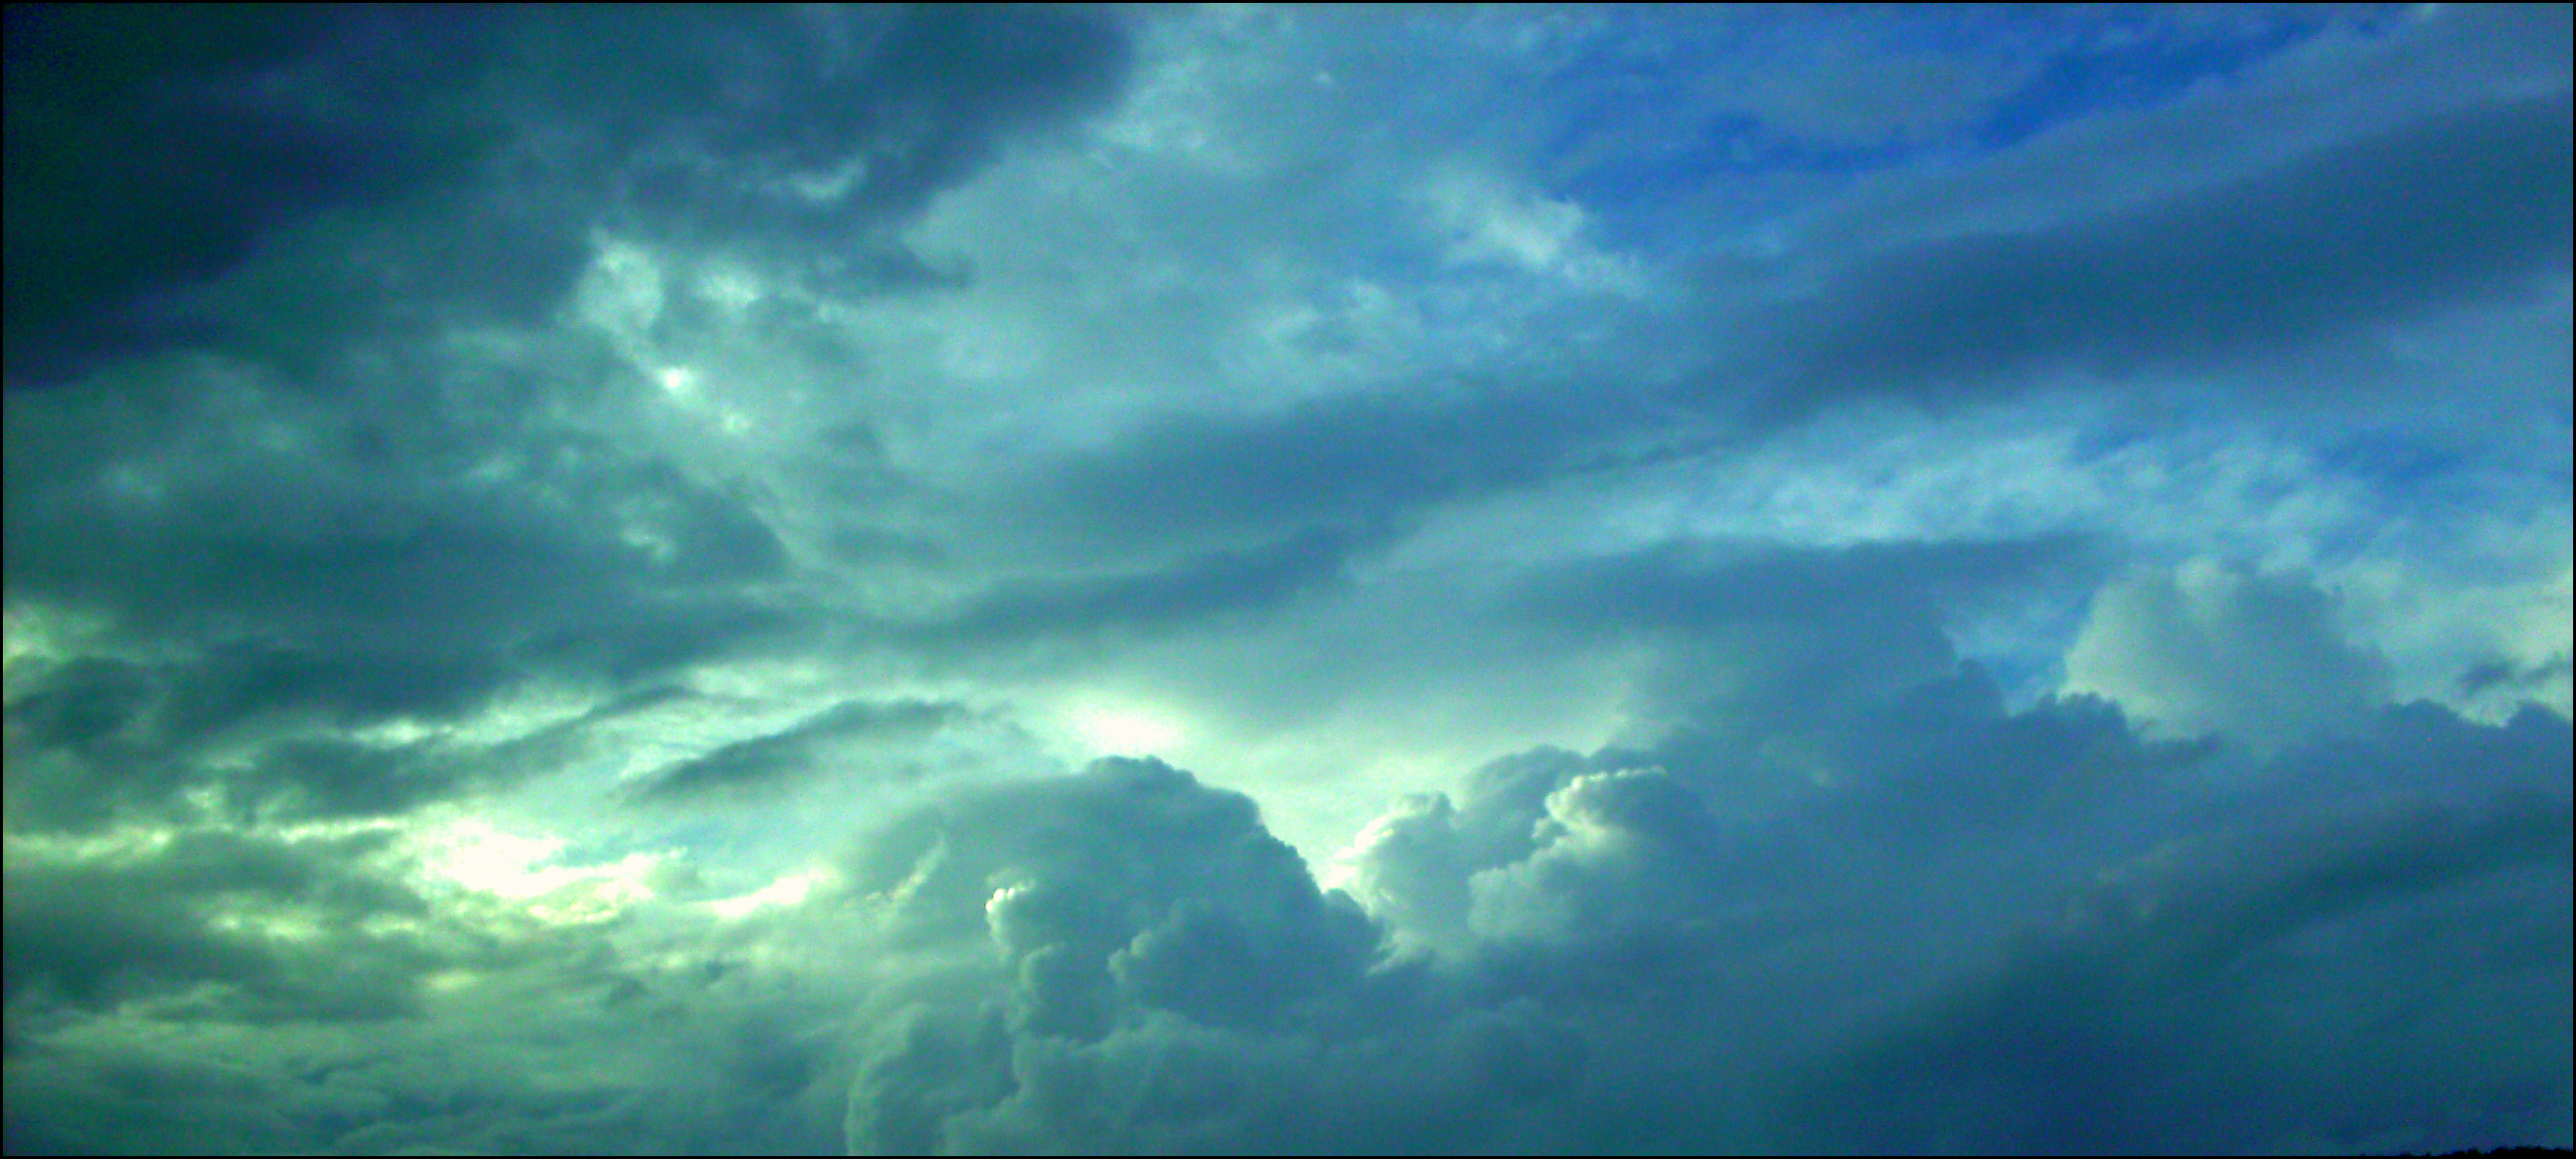 Cloudy Sky - Panorama by JulieLovesMusic on DeviantArt